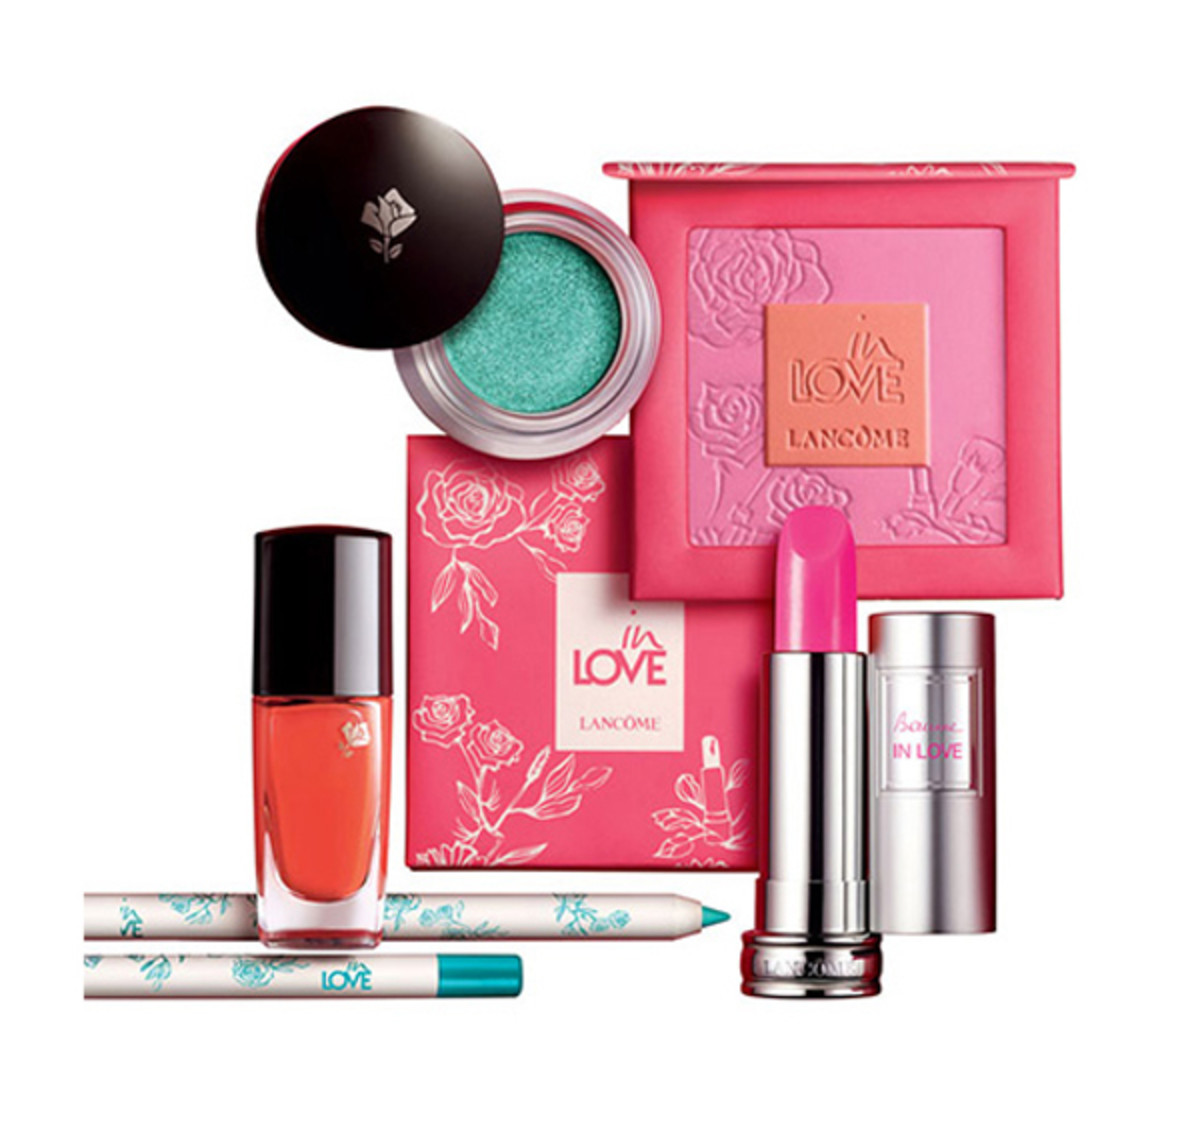 Lancome In Love collection